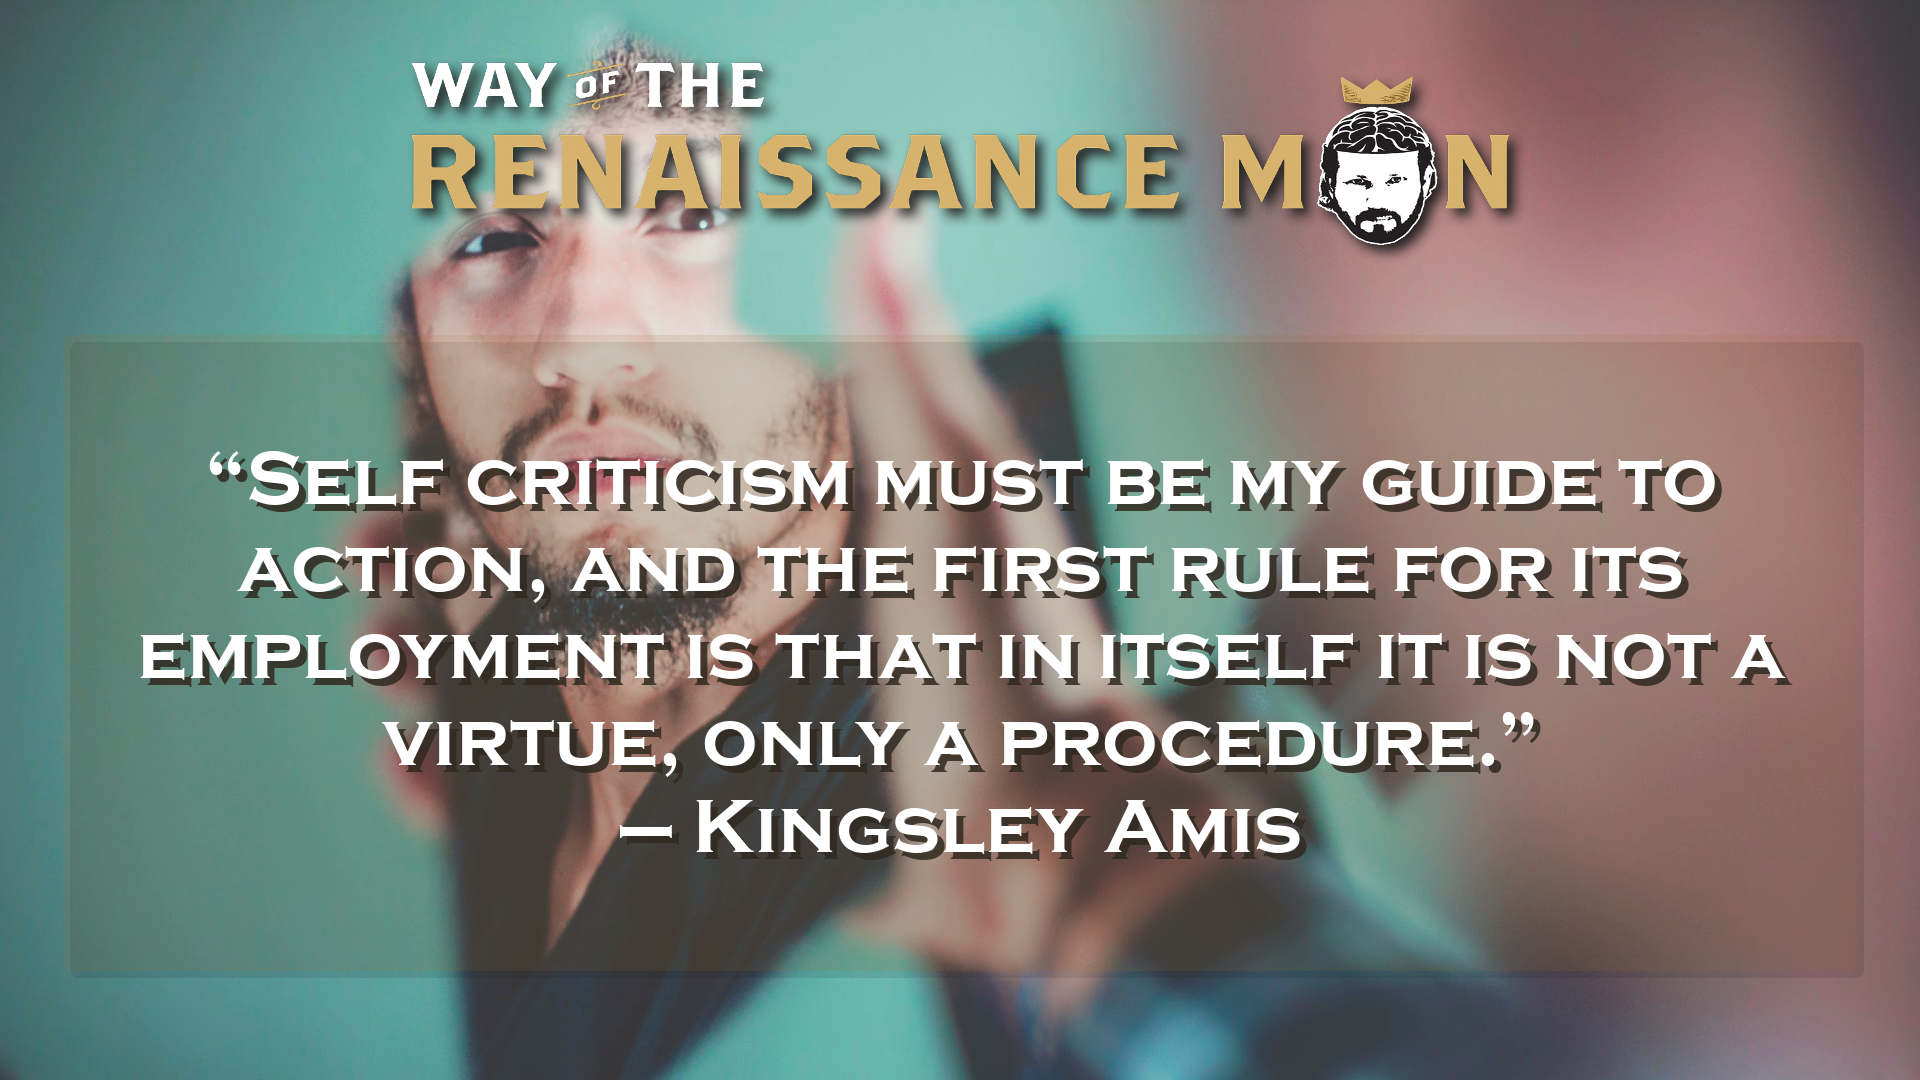 Amis on Self Criticism #WednesdayWisdom from Way Of The Renaissance Man Starring Jim Woods